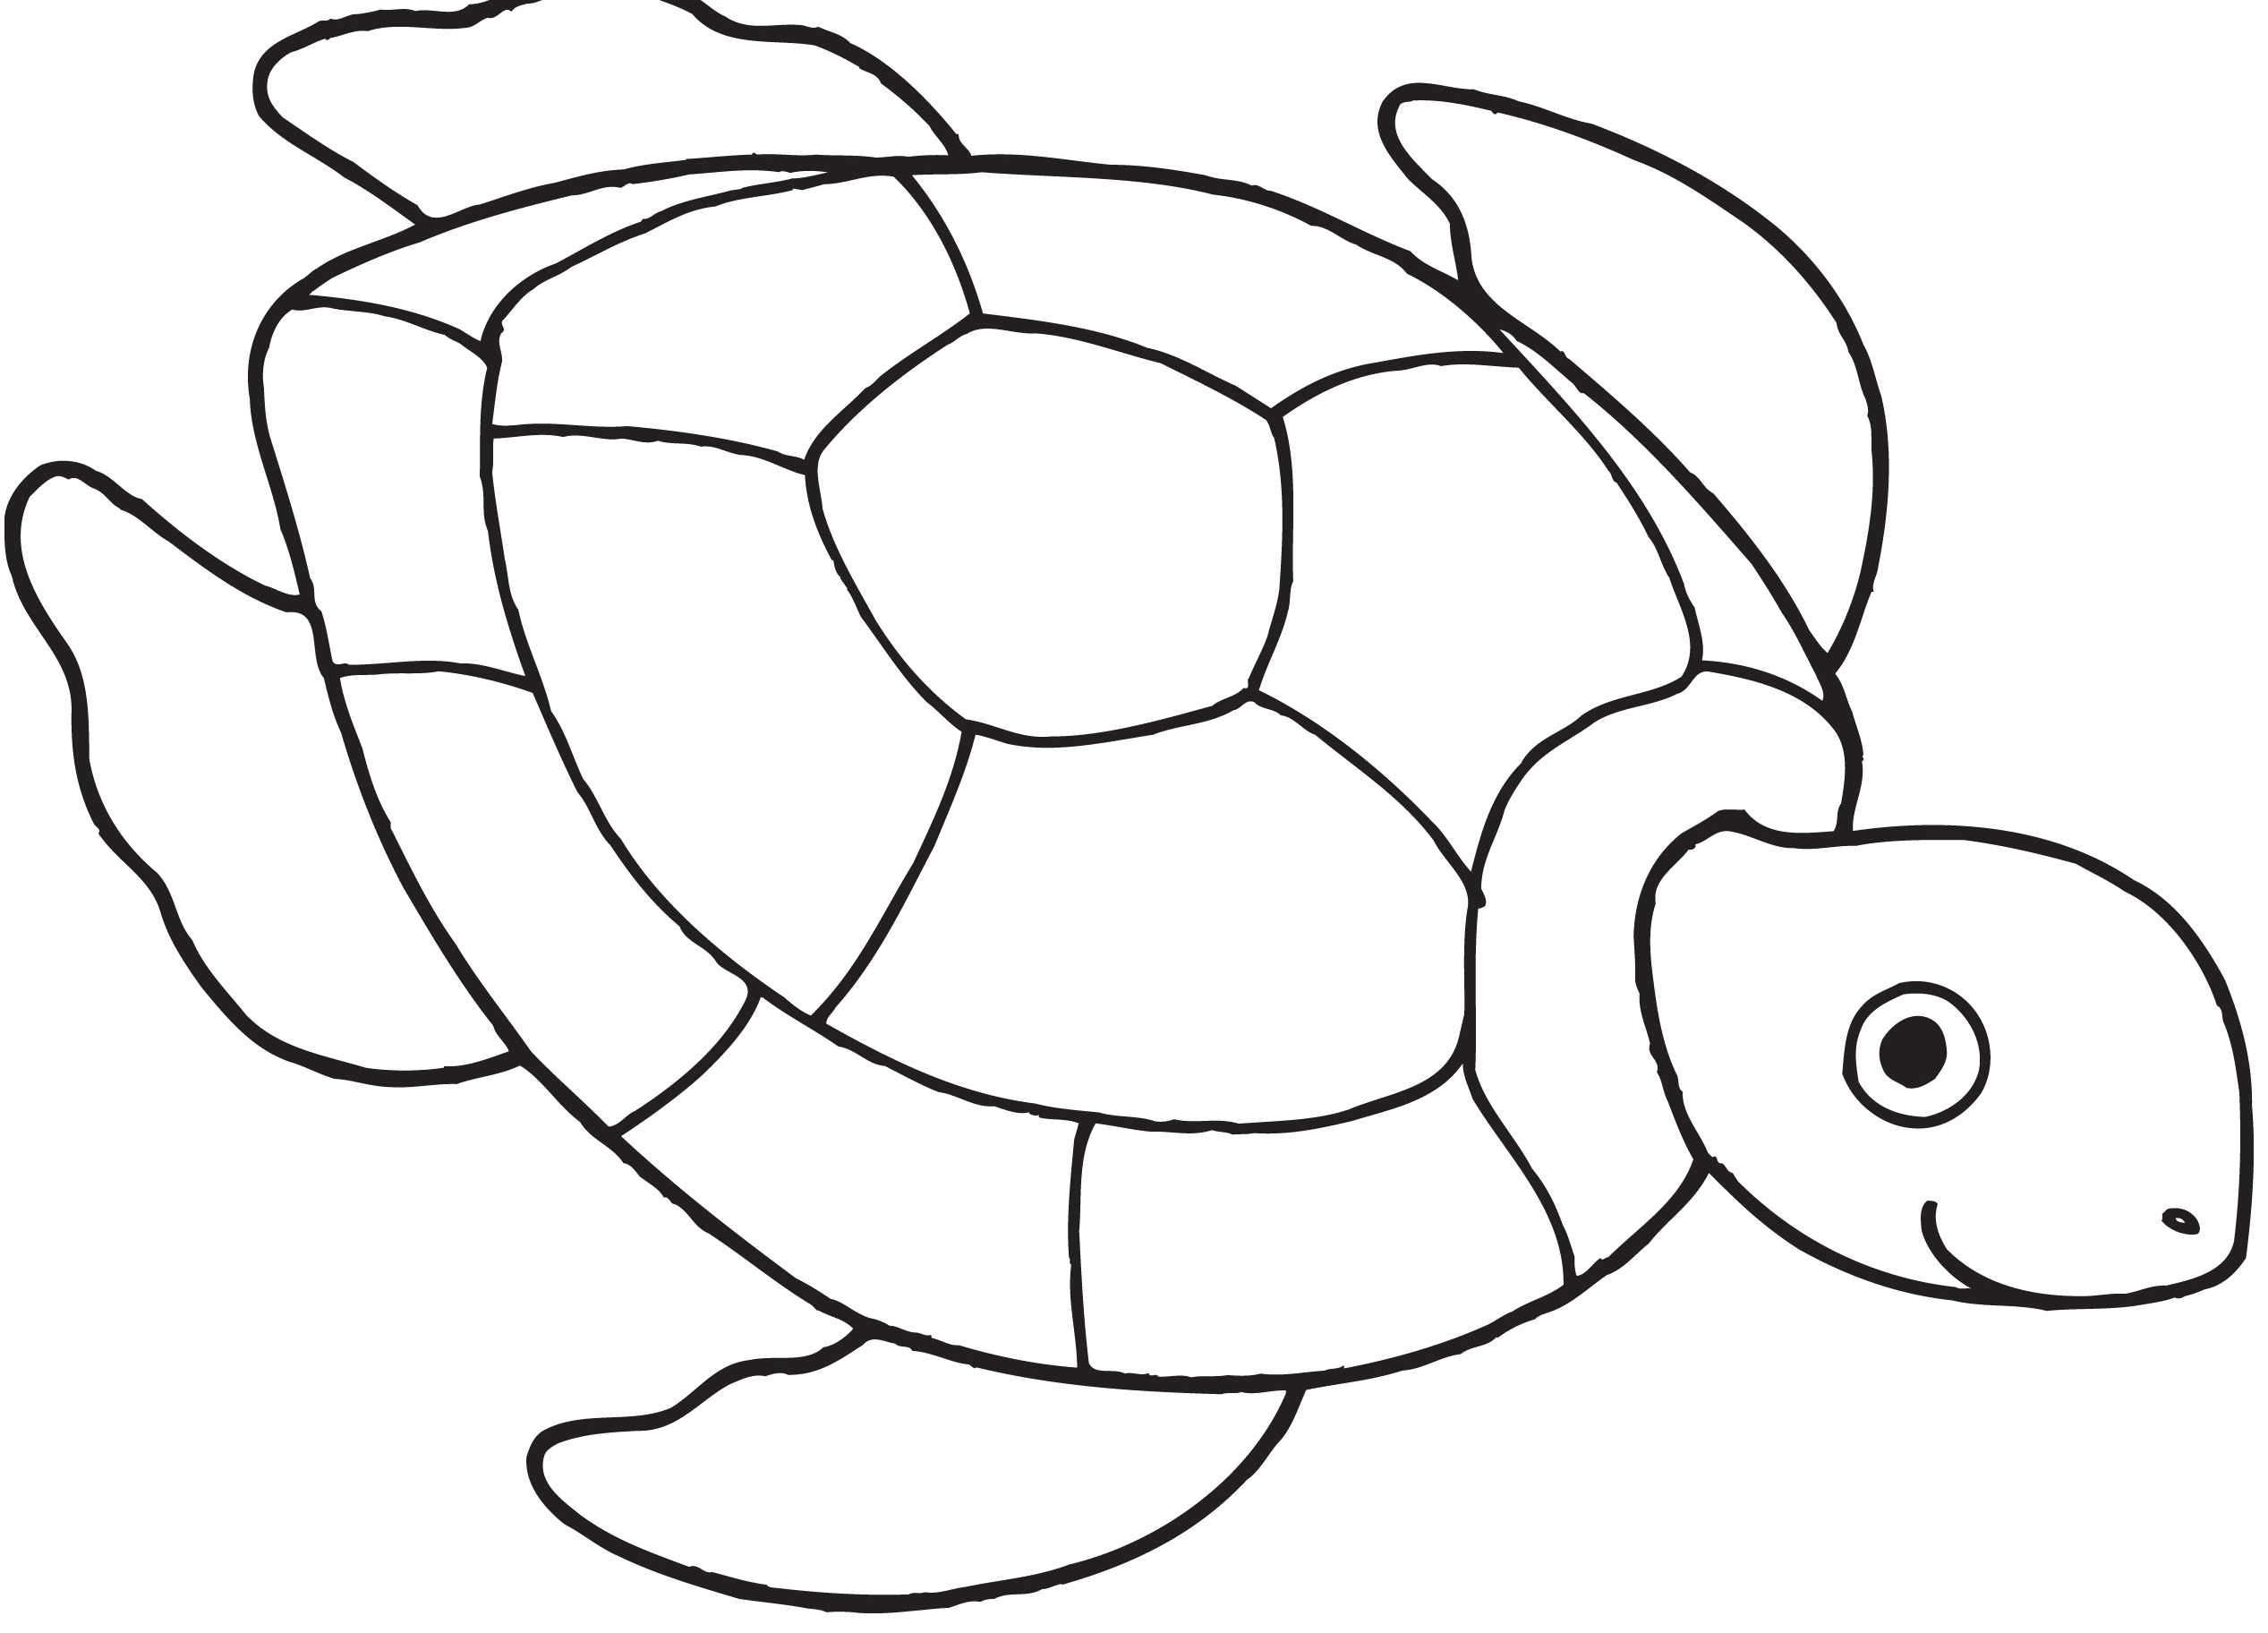 Ninja Turtles Black And White Clipart